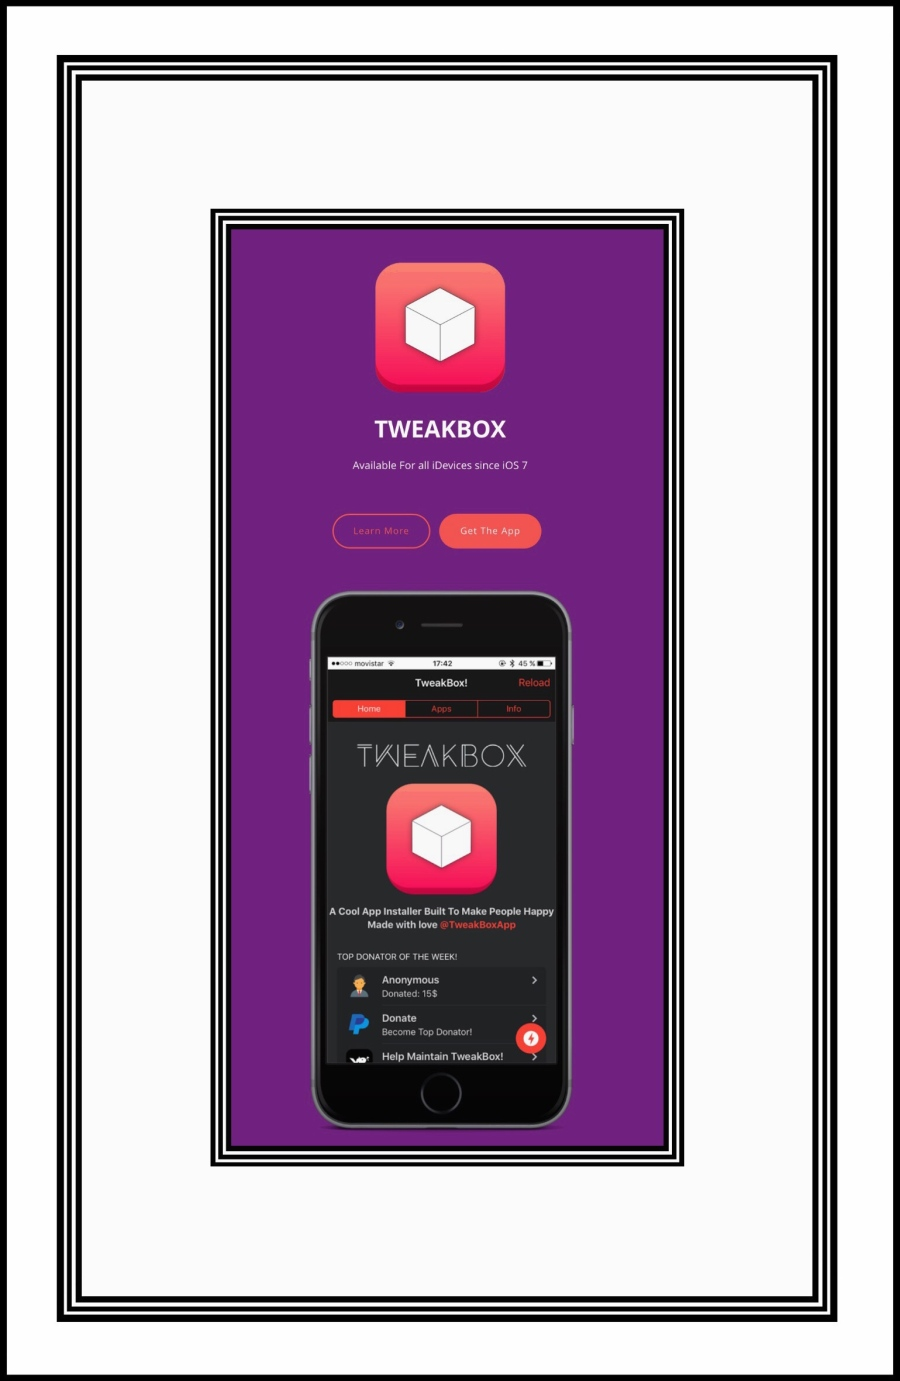 Tweakbox site and app for side-loading apps